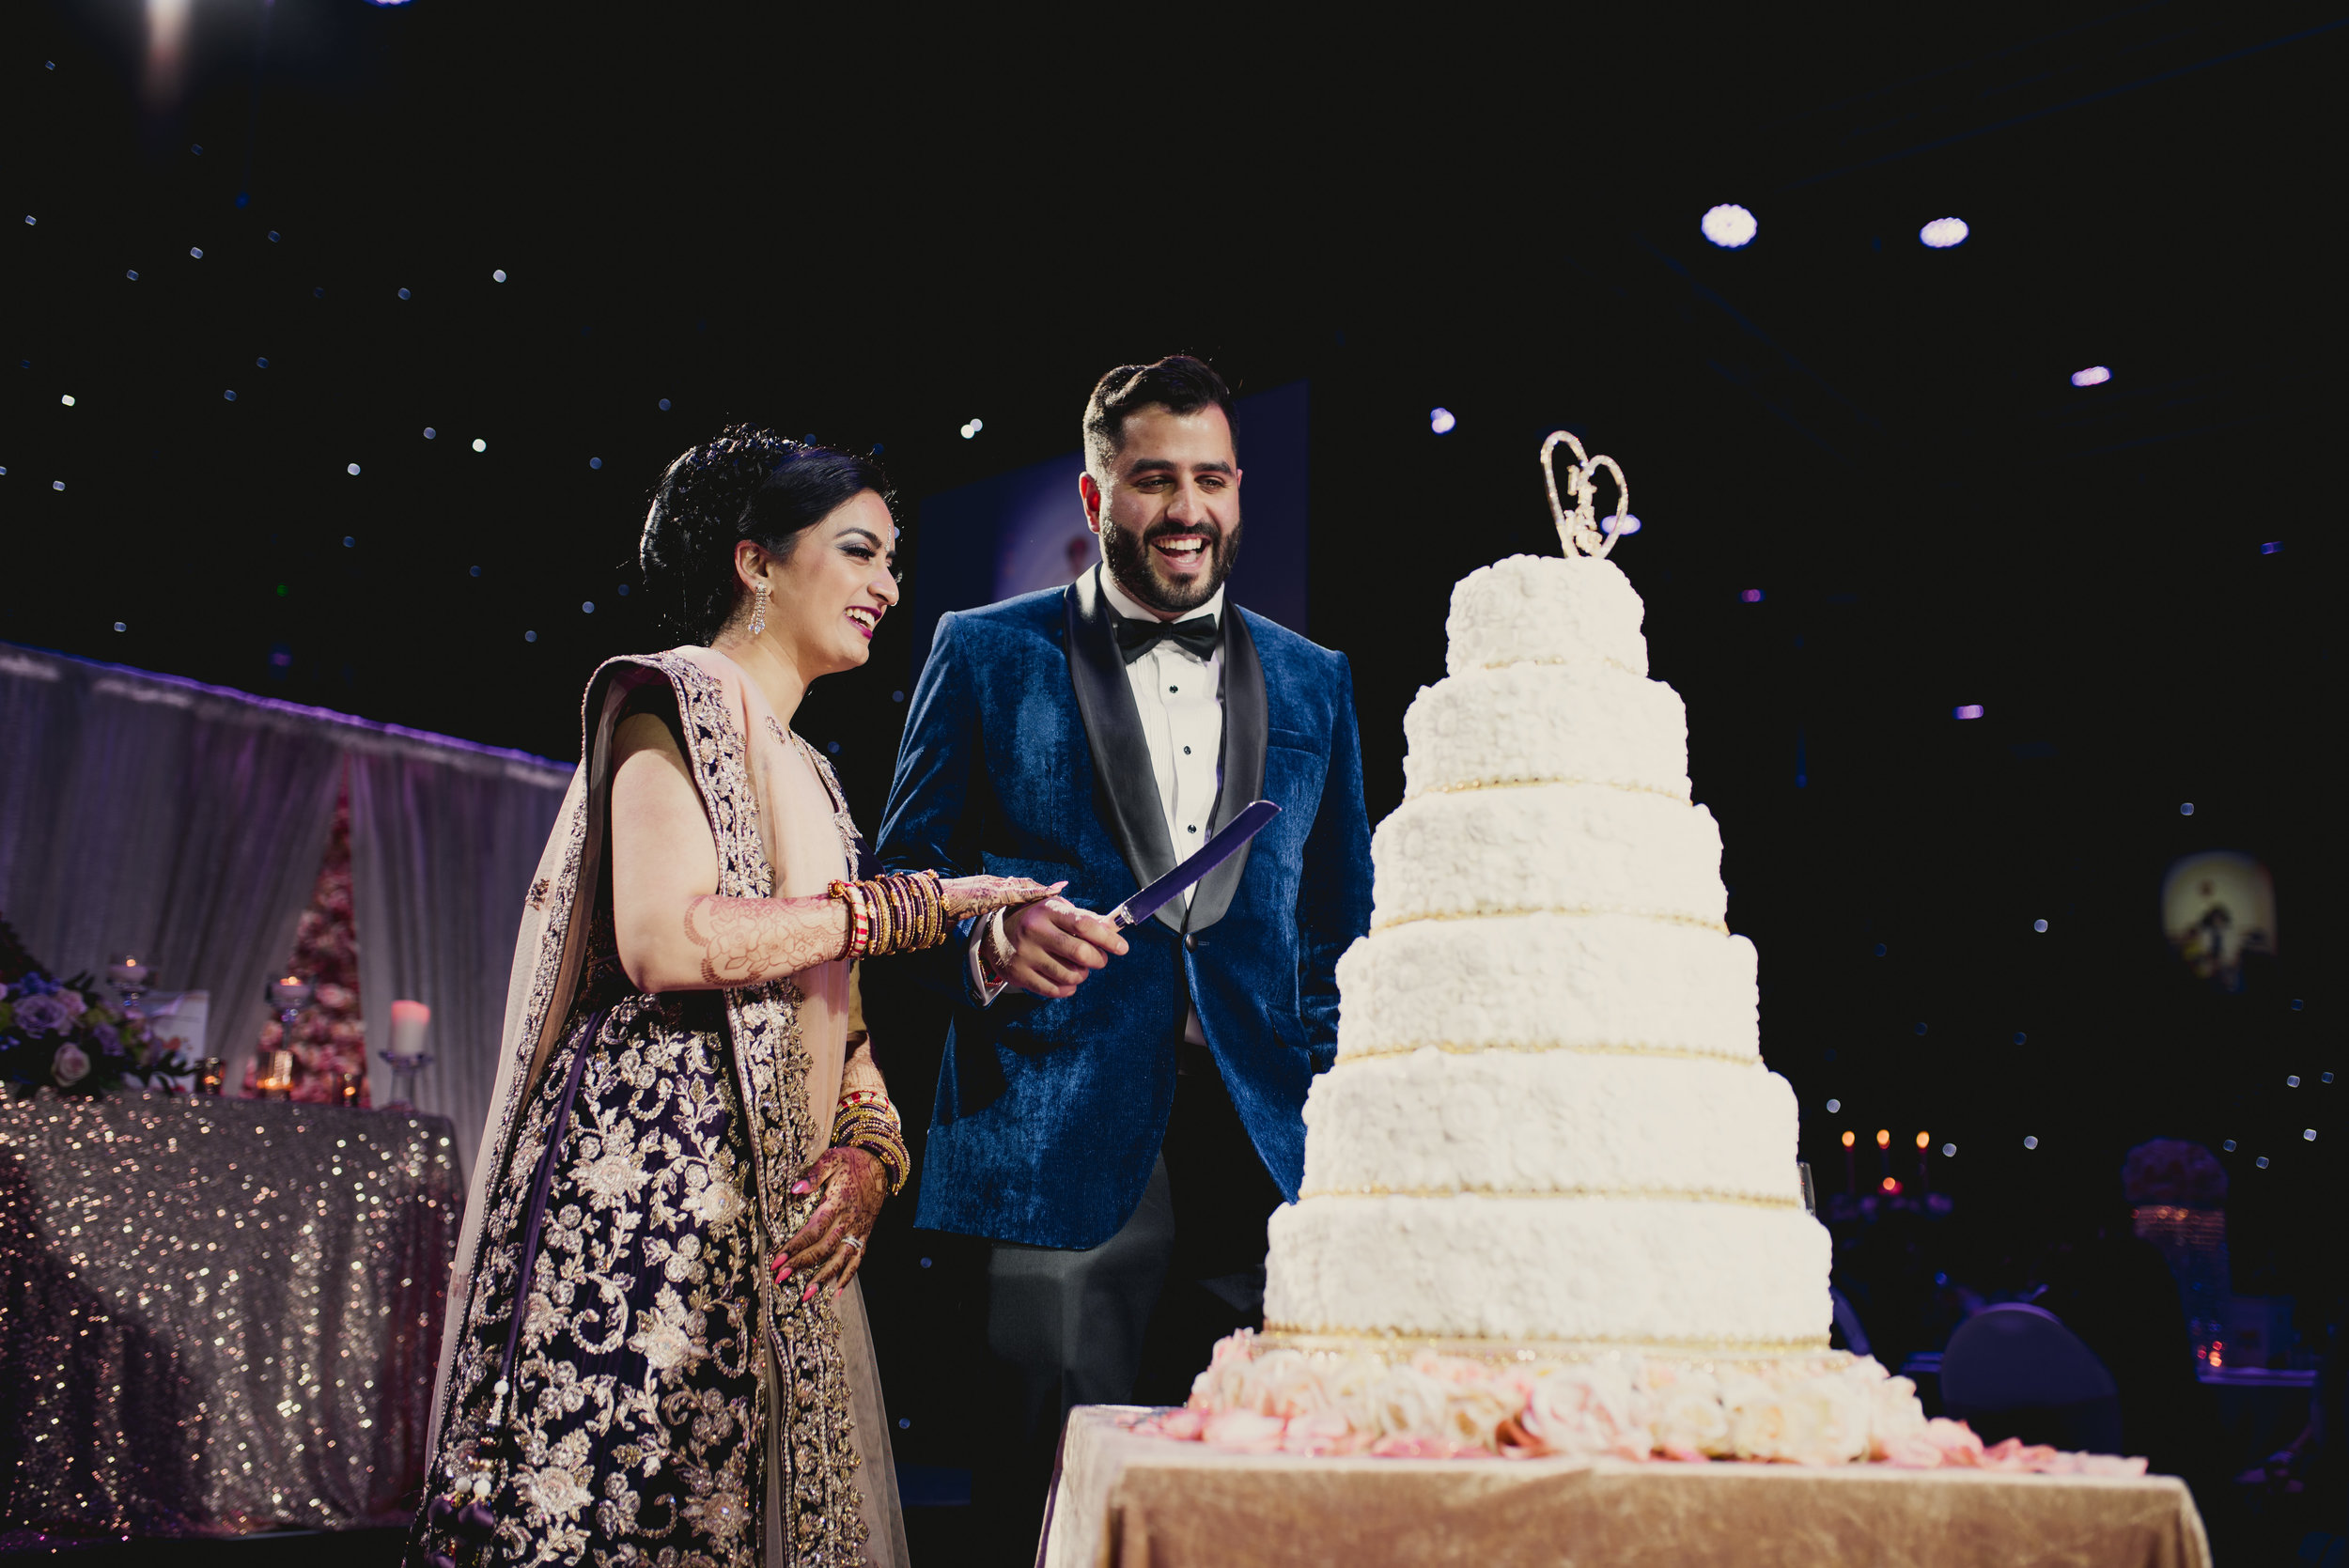 London_Wedding_Photographer_Intocandid_Photography_Ketan & Manasvi_63.JPG